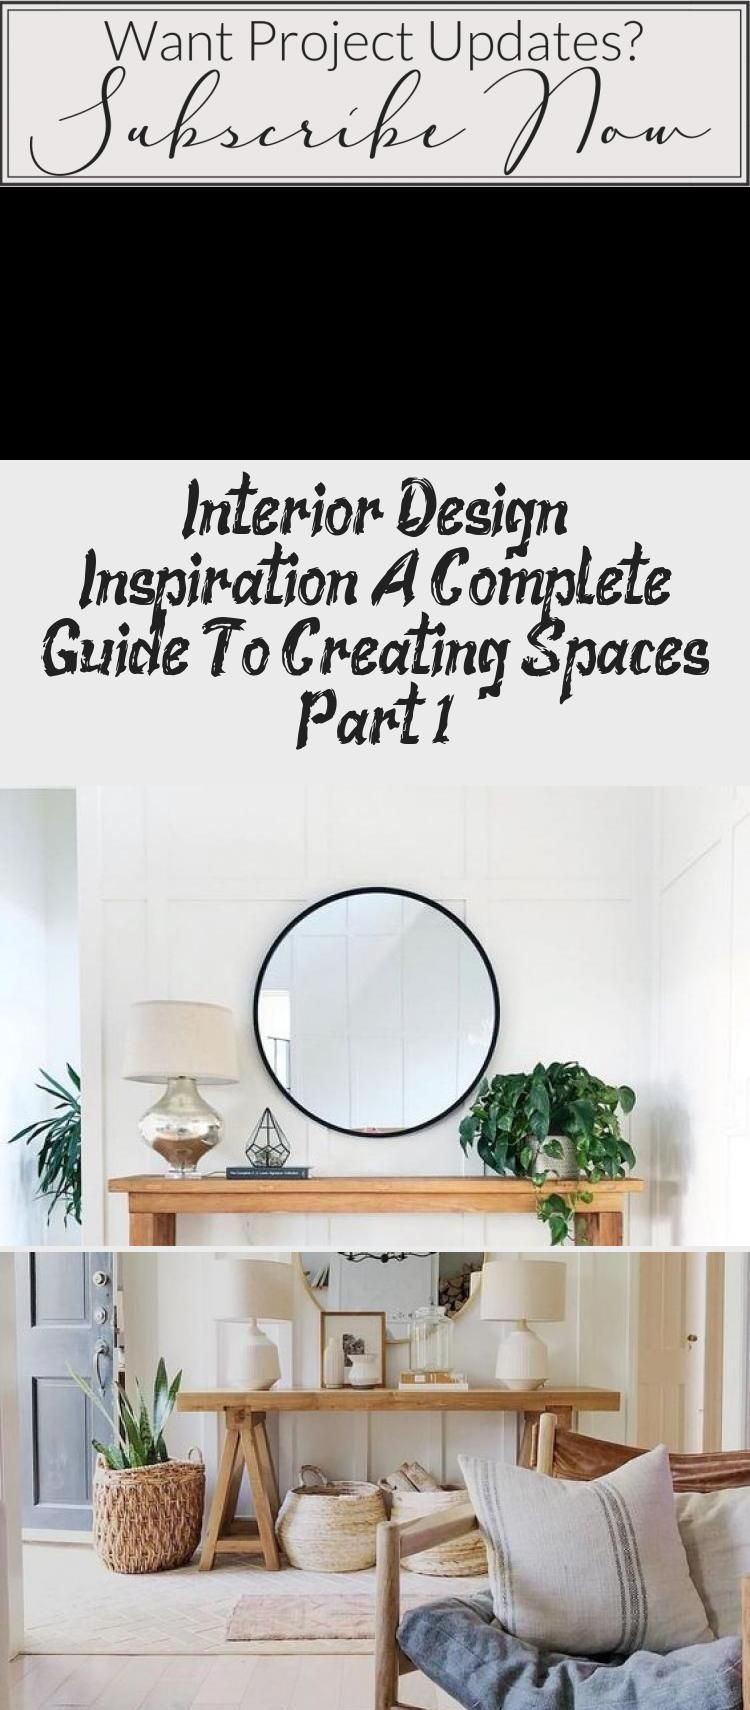 Do you struggle to take a space from dream to reality? Join me for a complete guide to creating spaces you love, starting with interior design inspiration! #fromhousetohaven #interiordesigninspiration #homedecor #interiordesign #Traditionalinteriordesign #interiordesignTips #Vintageinteriordesign #interiordesignInteriorismo #interiordesignFurniture